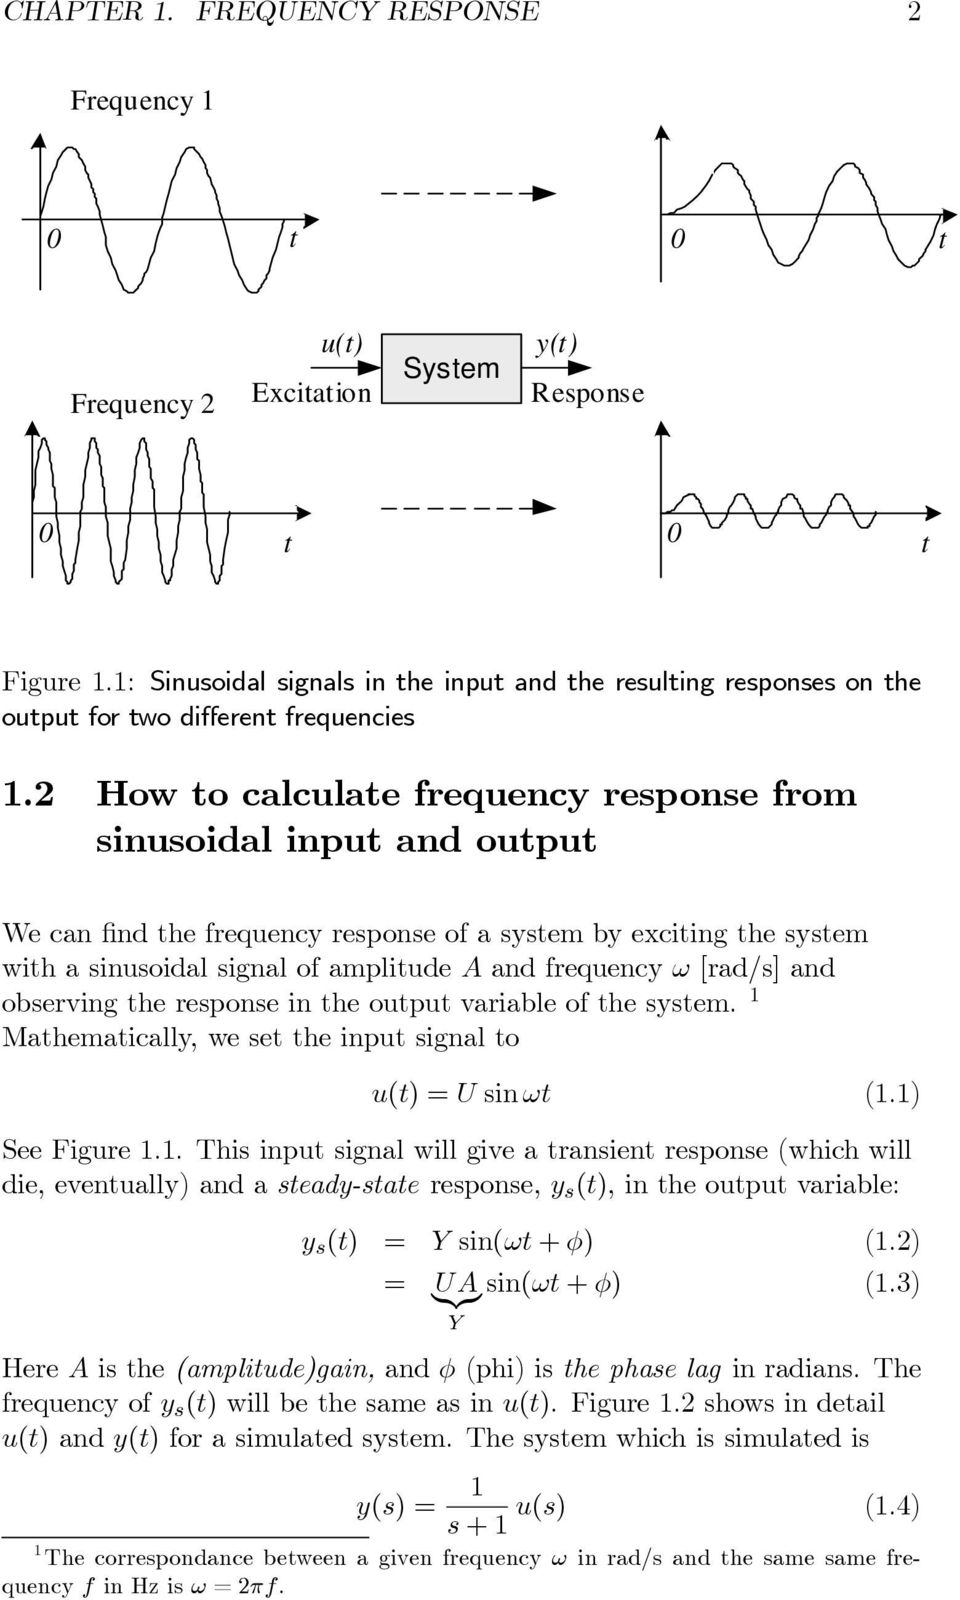 Frequency Response Chapter Introduction Pdf Figure 1 Circuit Diagram For An Op Amp Summer Used As A Dac 2 How To Calculate From Sinusoidal Input And Output Wecanfindthefrequencyresponseofasystembyexcitingthesystem With Signal